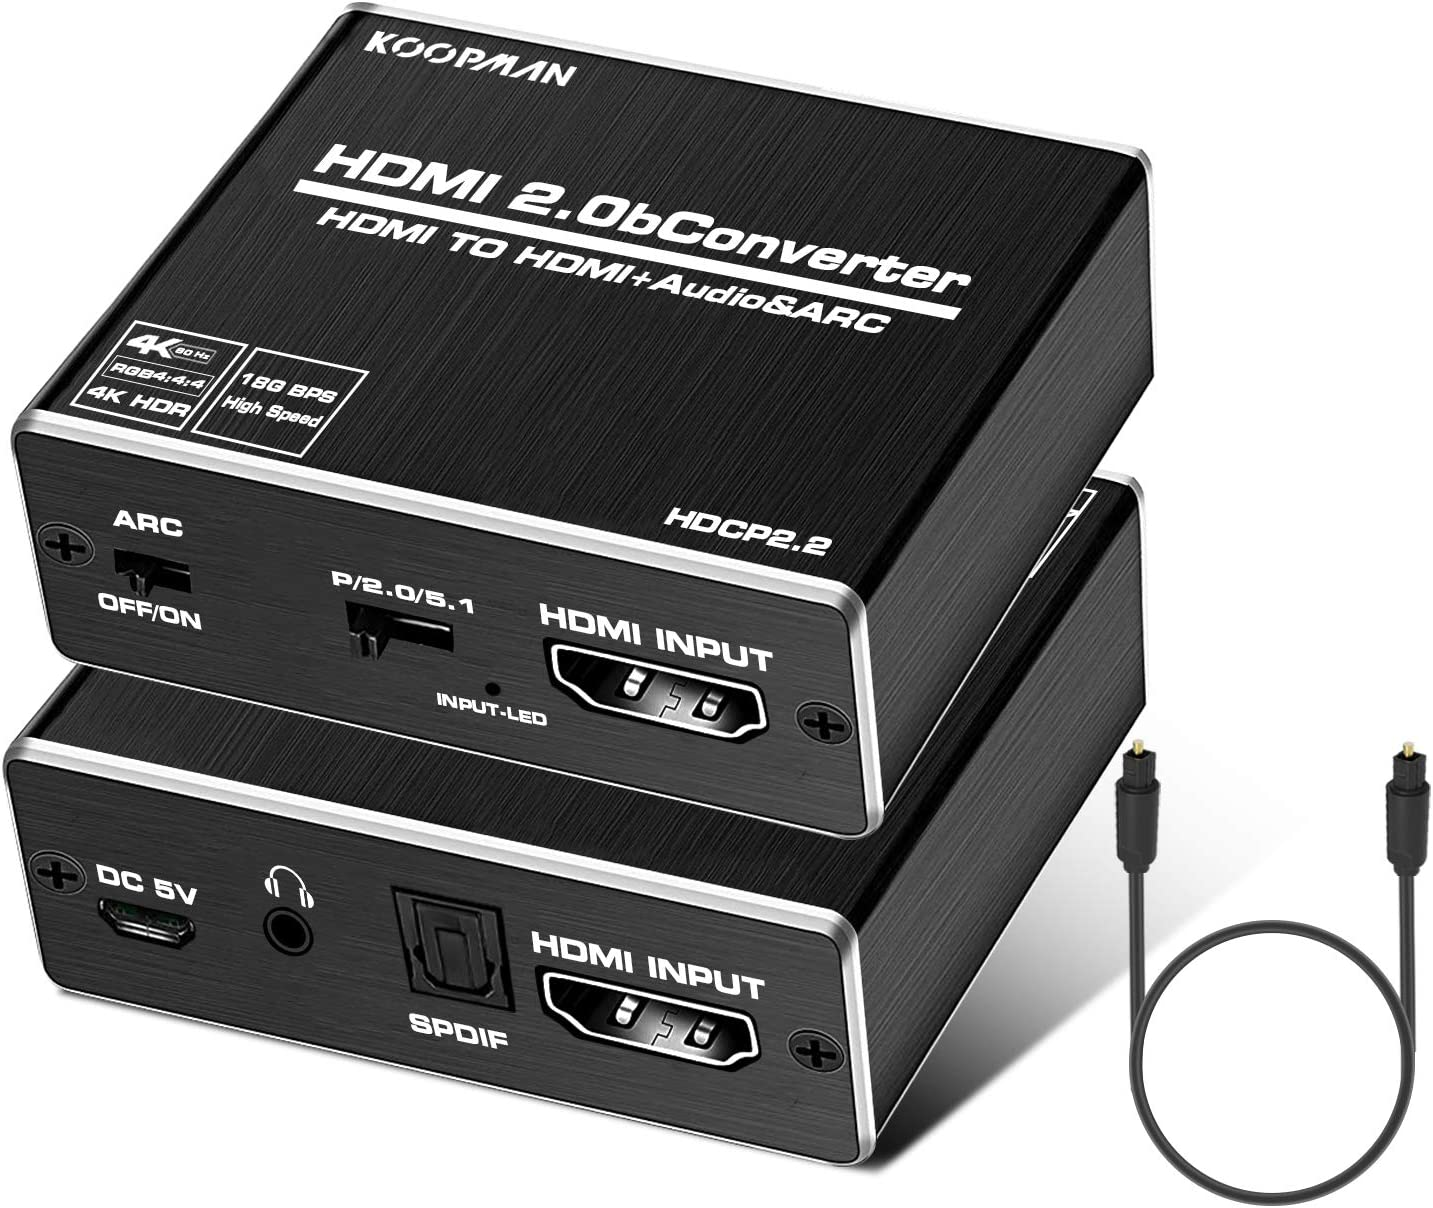 Koopman 4K HDMI Audio Extractor, HDMI to HDMI + Optical Toslink (5.1 SPDIF) + 3.5mm AUX Stereo Audio Converter, HDMI Audio Splitter Adapter, Supports HDMI 2.0b 4K@60Hz HDCP 2. 2 3D Dolby 5.1